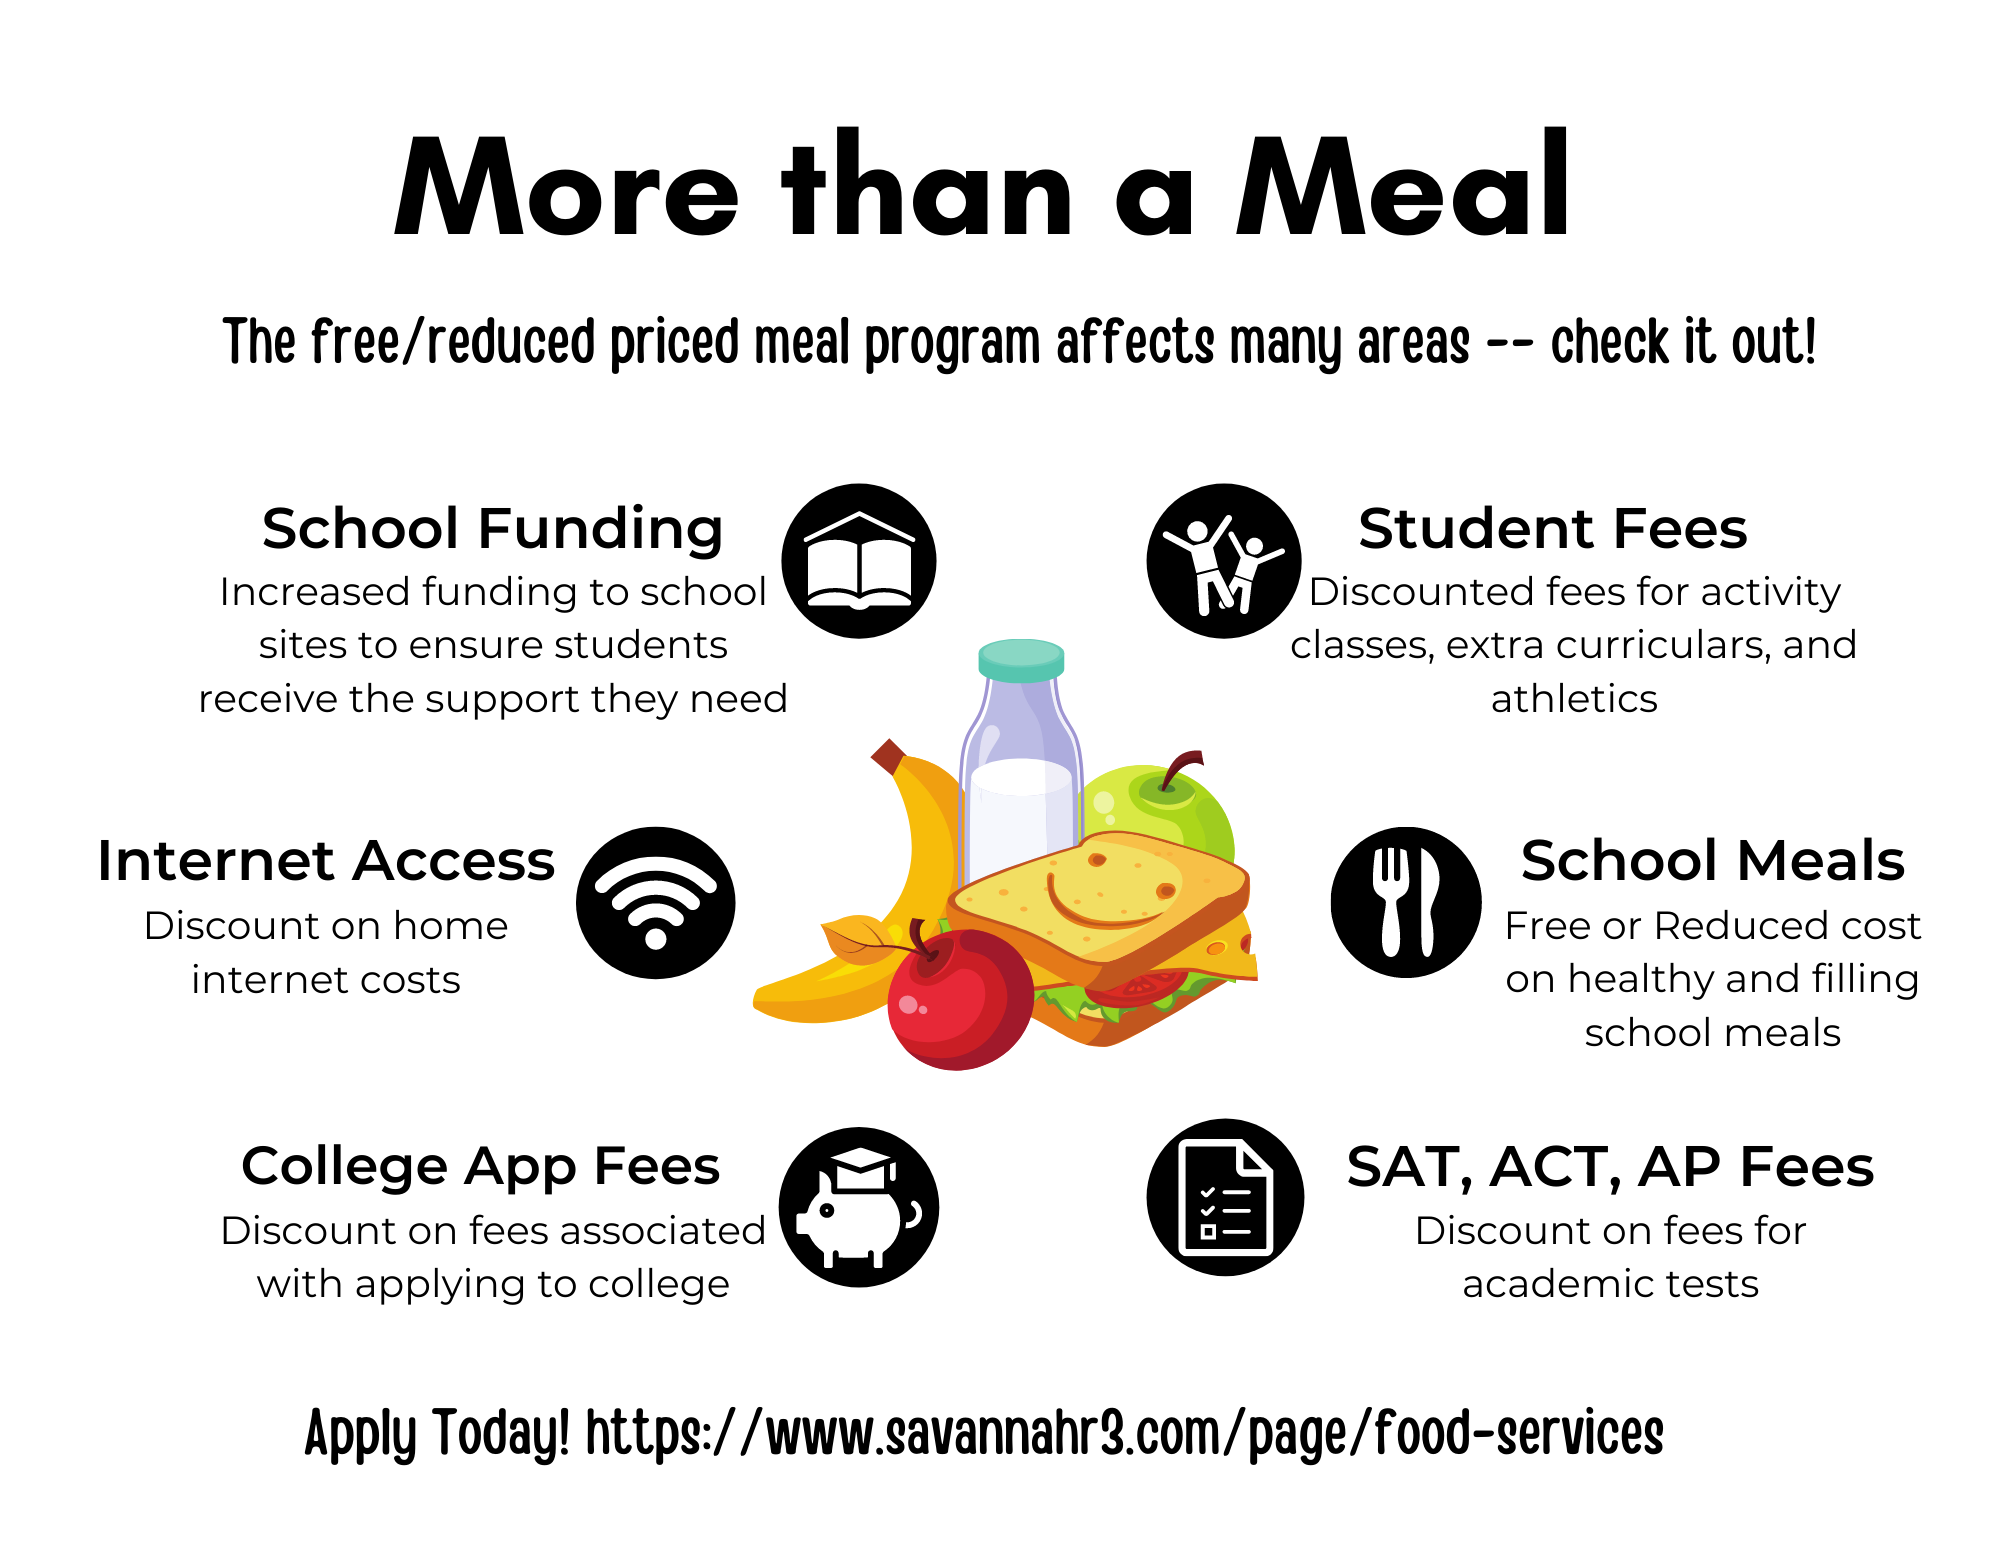 More than a meal infographic